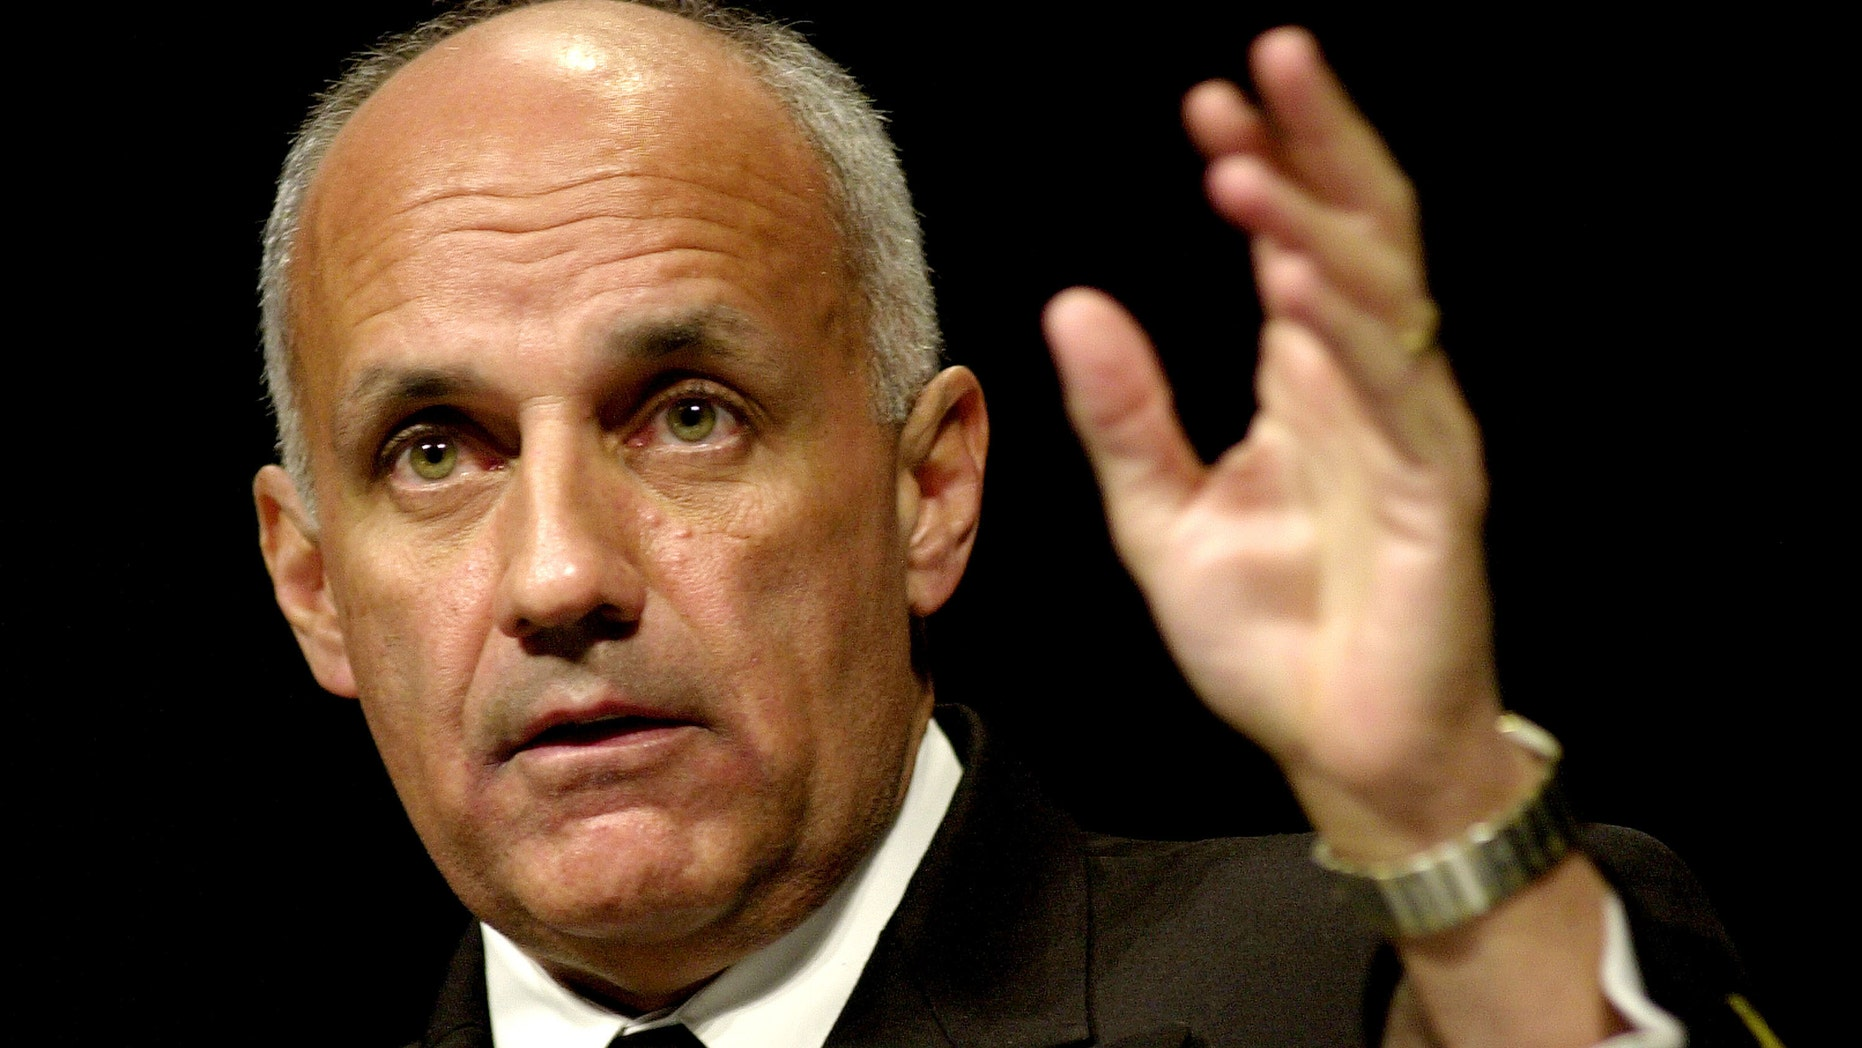 Former U.S. Surgeon General Richard Carmona, who served under President George W. Bush, is running for retiring Republican U.S. Sen. Jon Kyl's seat.